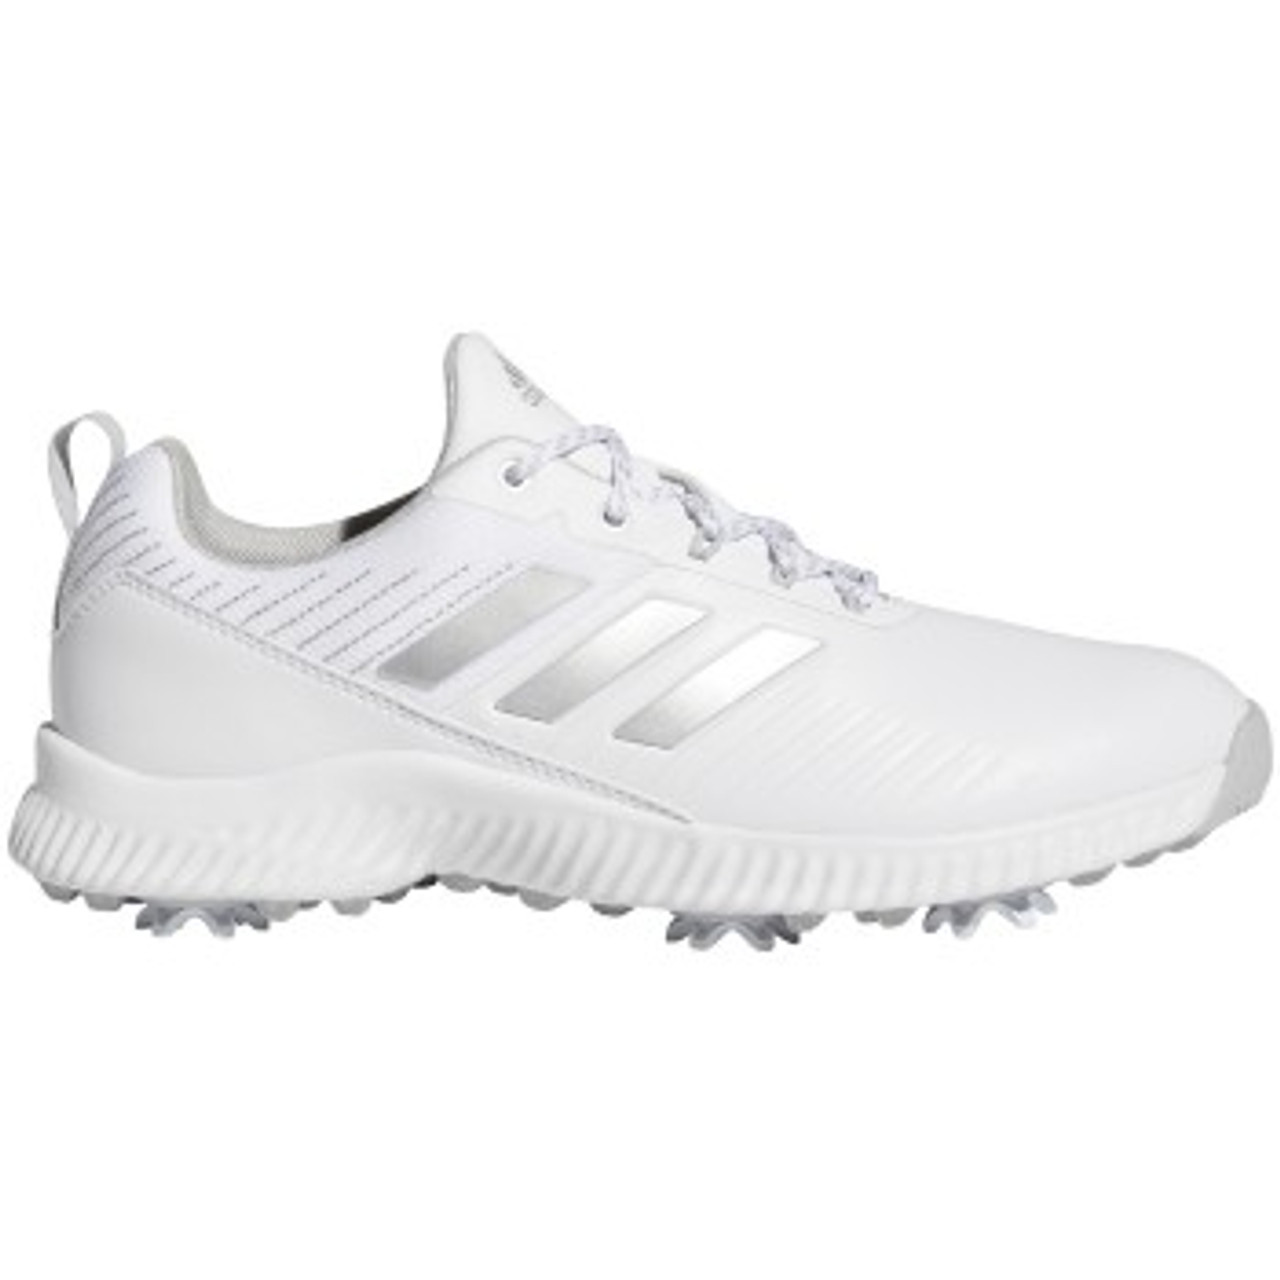 Adidas Womens Response Bounce 2.0 Golf Shoes